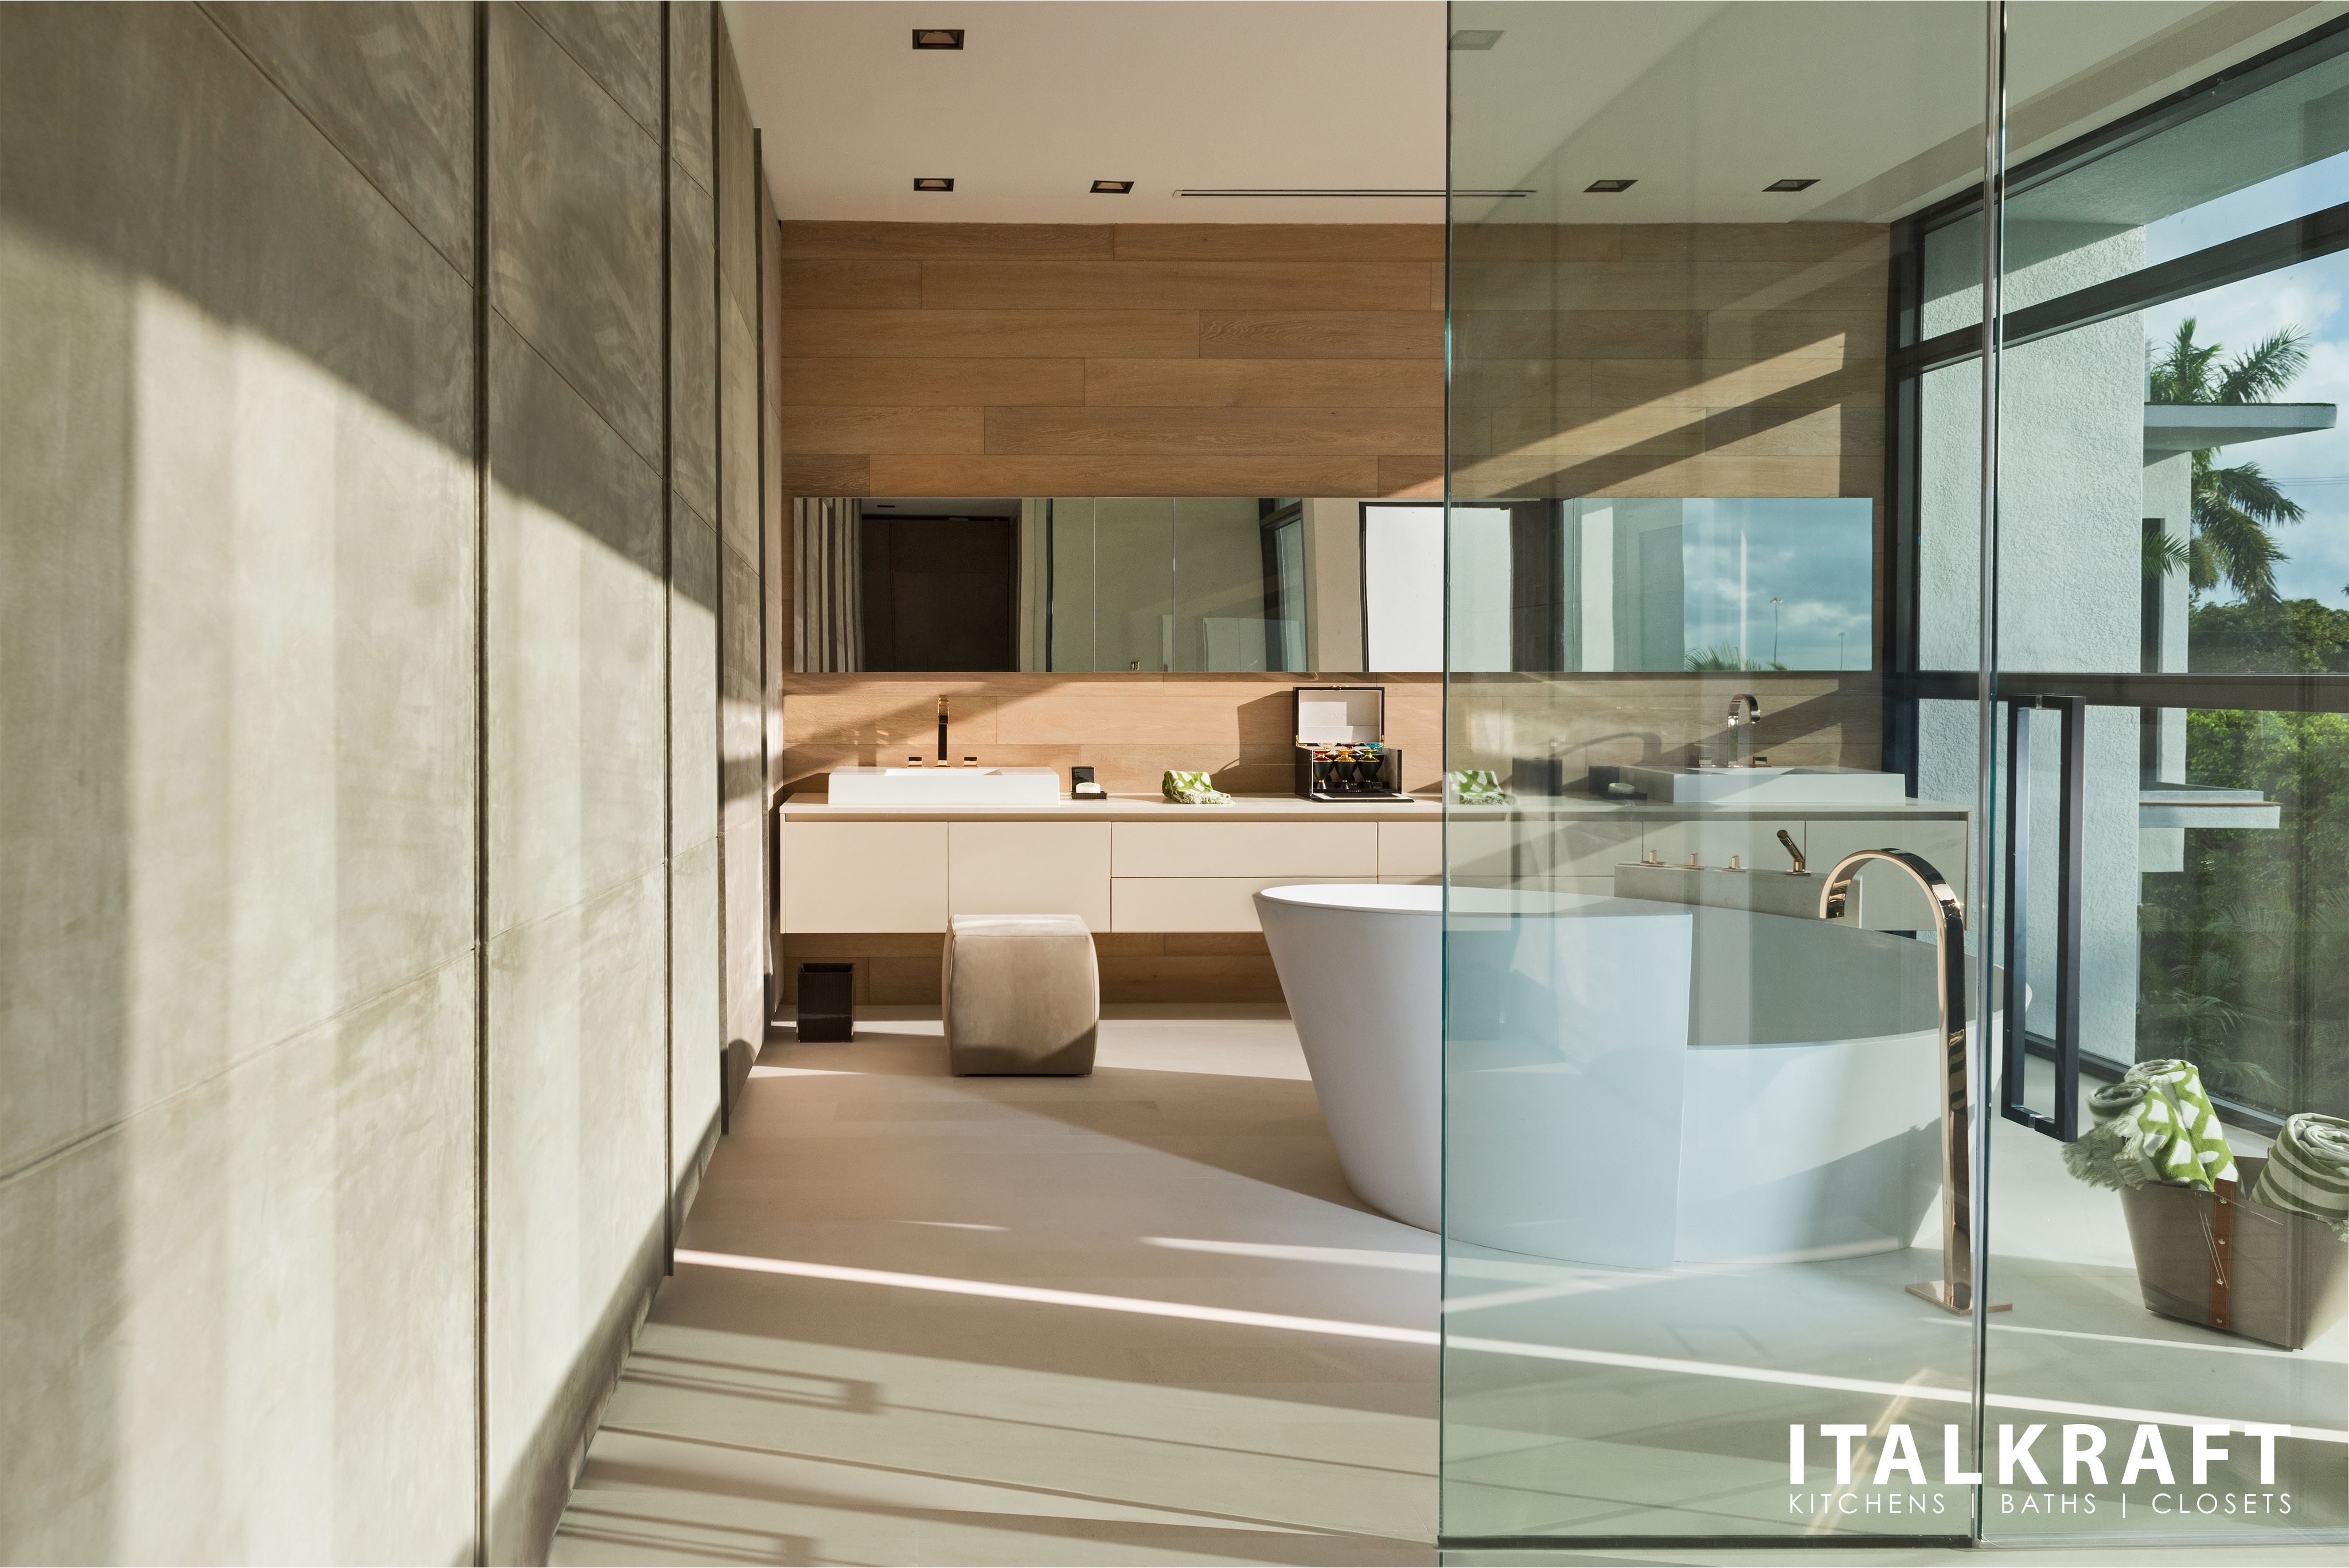 Outstanding Custom Luxury Bathroom Design By Italkraft Luxury Design Download Free Architecture Designs Sospemadebymaigaardcom